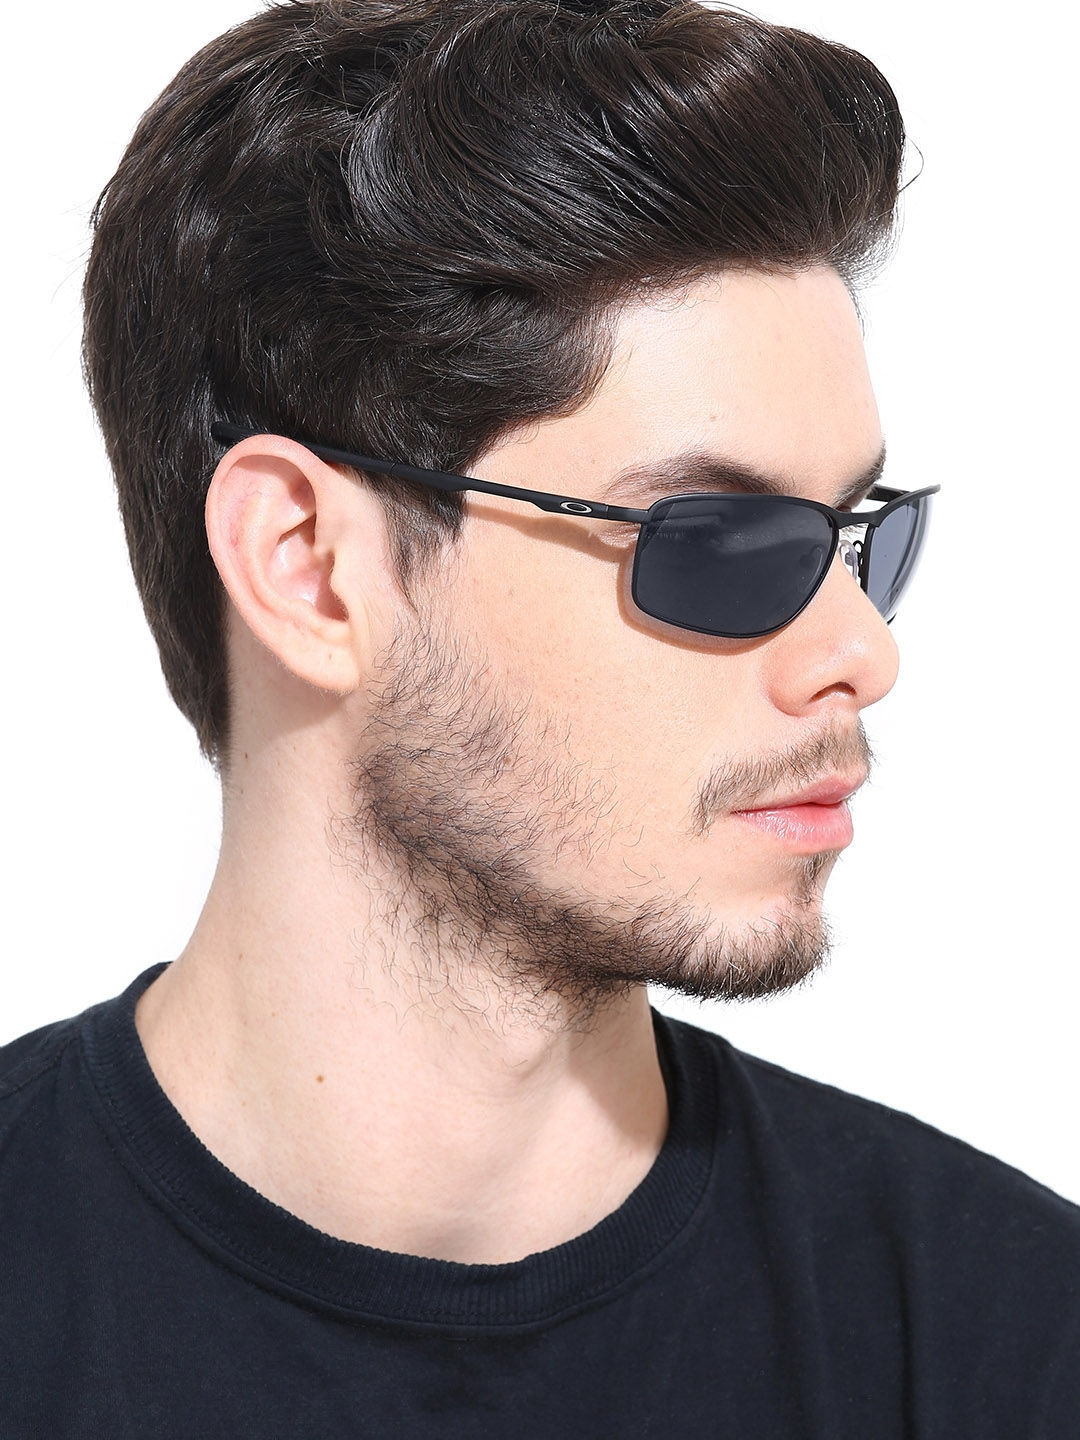 best price oakley sunglasses jopp  best price oakley sunglasses